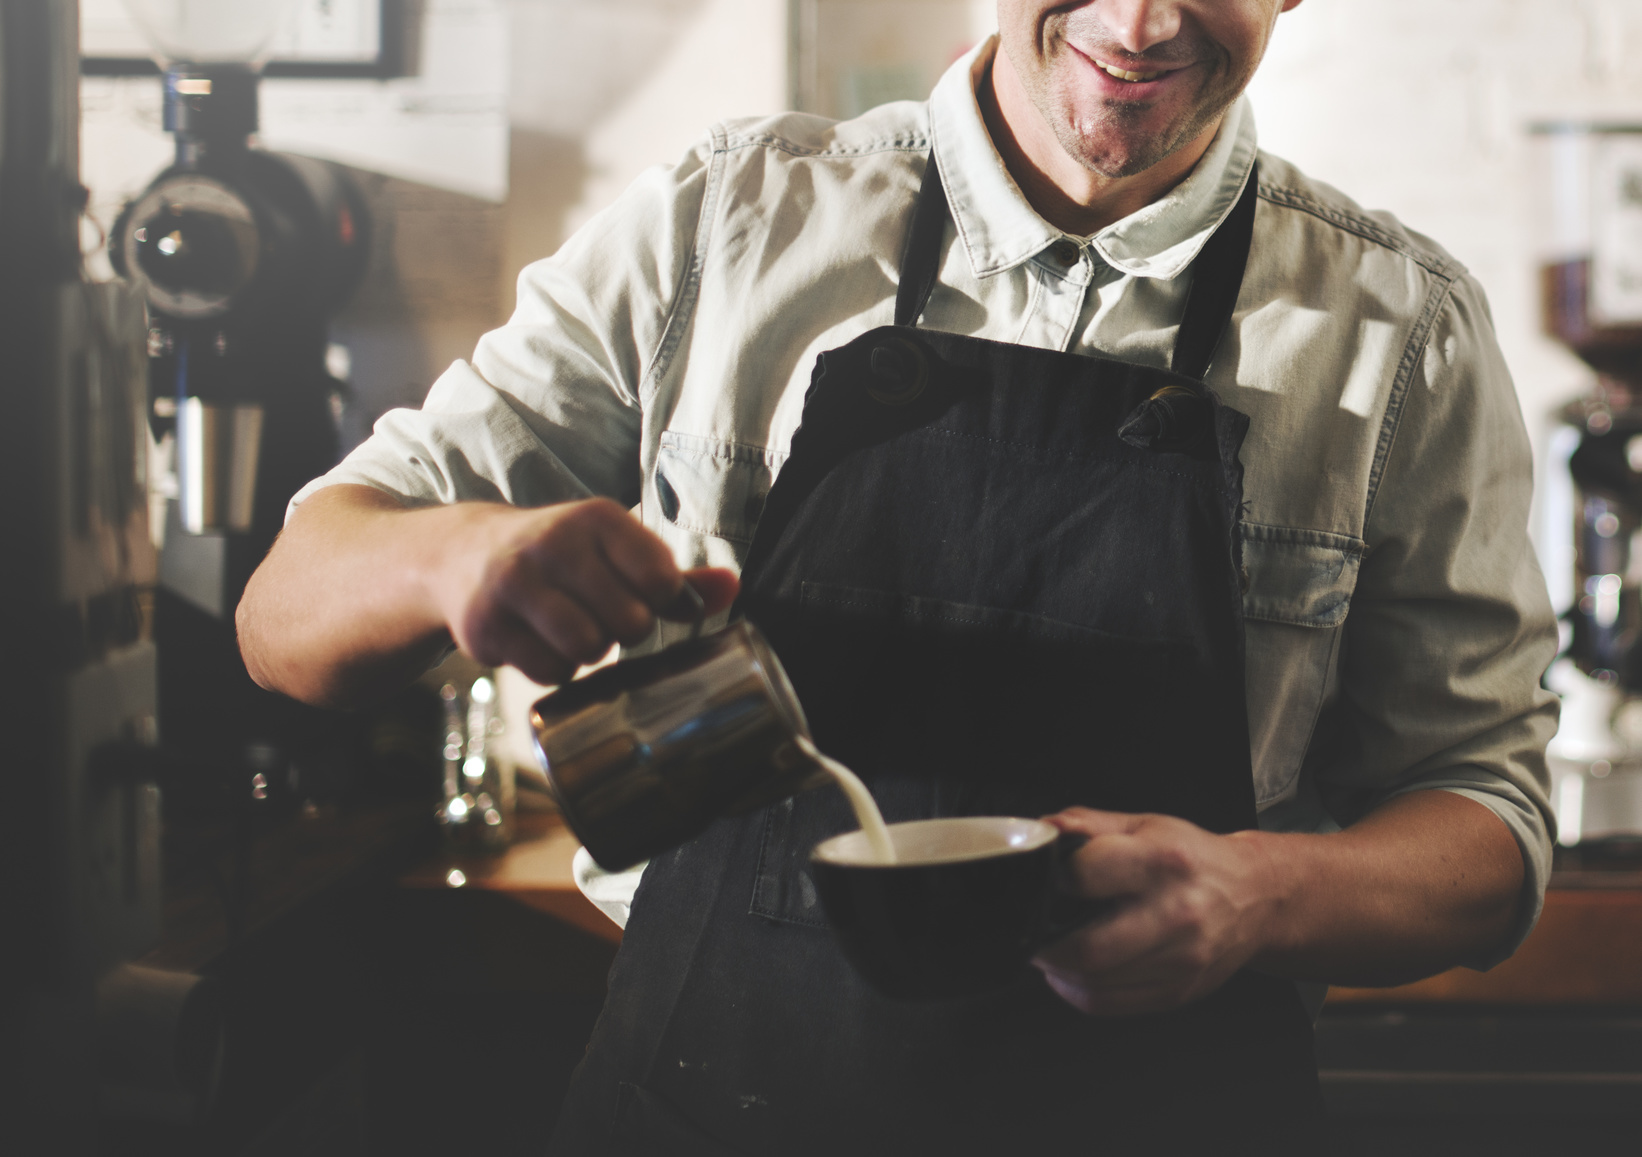 10 insider tips to opening a successful cafe or coffee business